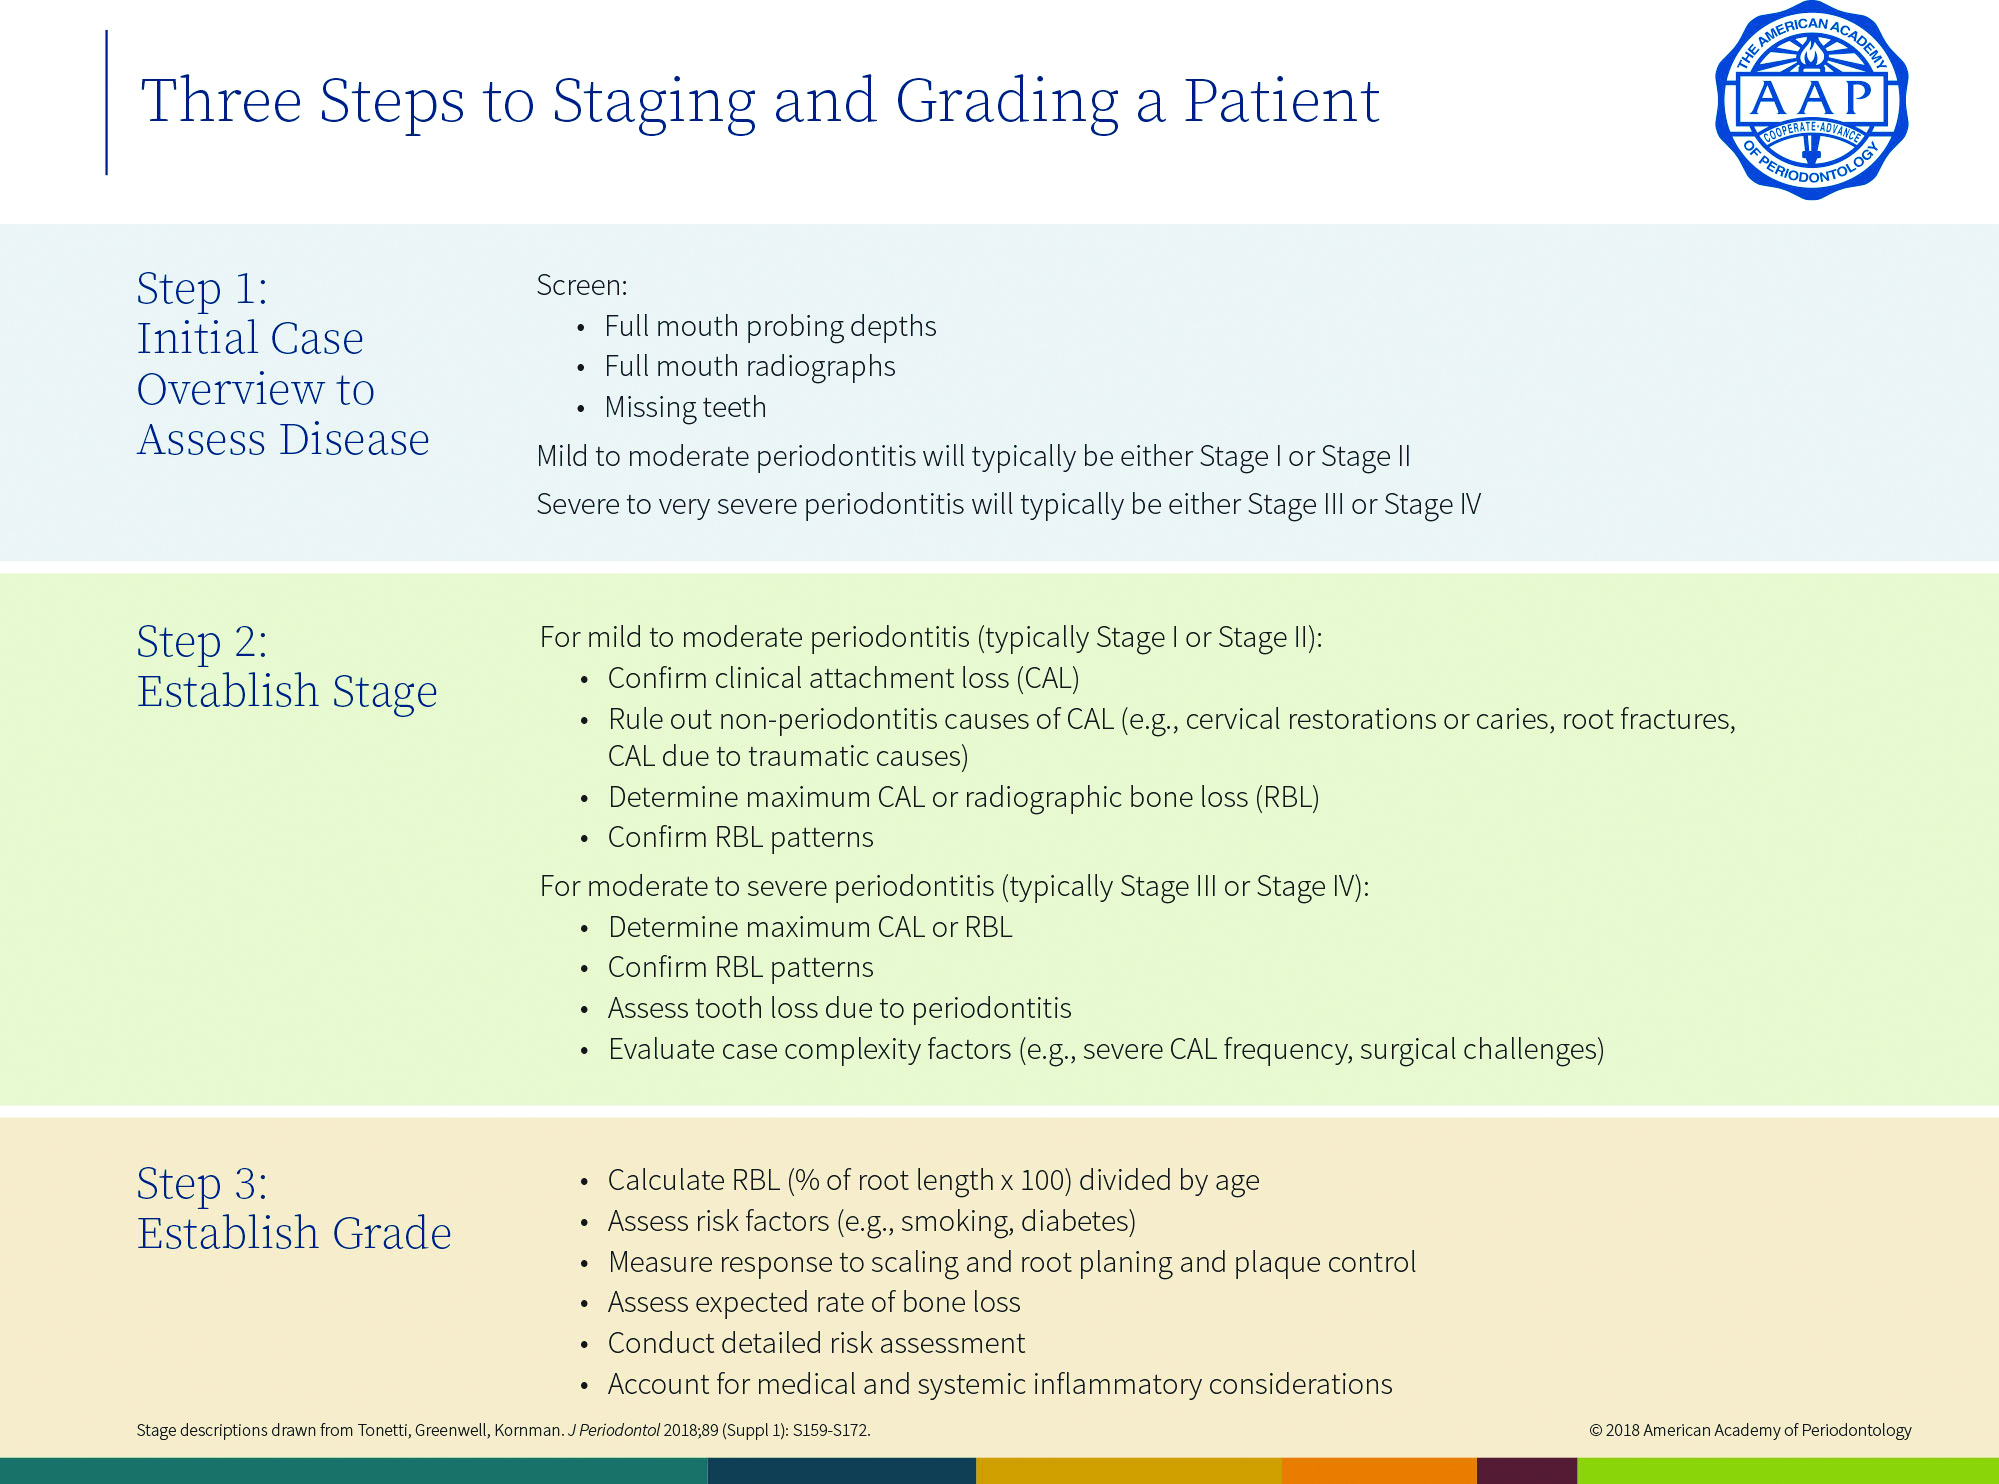 Three Steps to Staging and Grading a Patient - Periodontitis